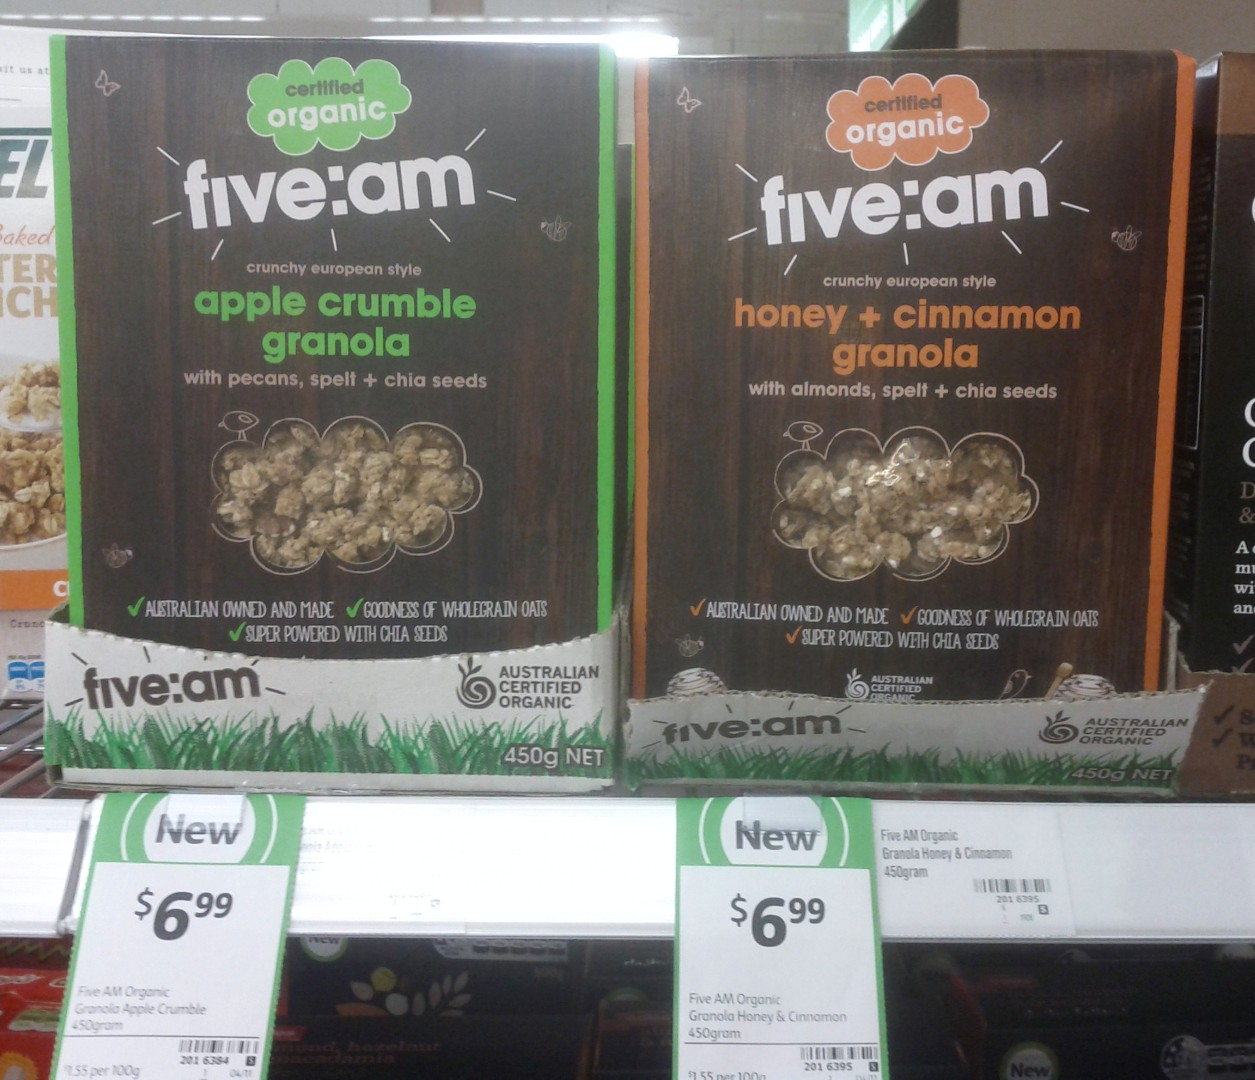 FiveAm 450g Apple Crumble Granola, Honey Cinnamon Granola